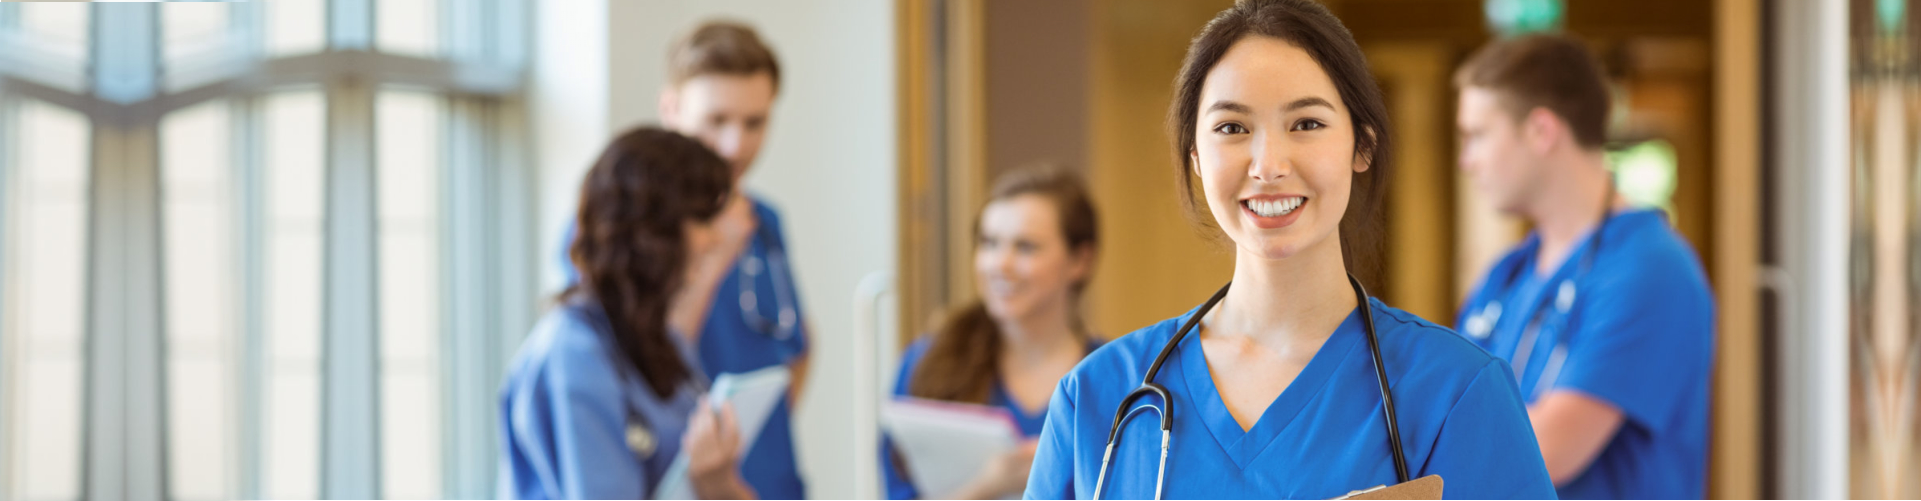 nurse smiling with colleagues at the background